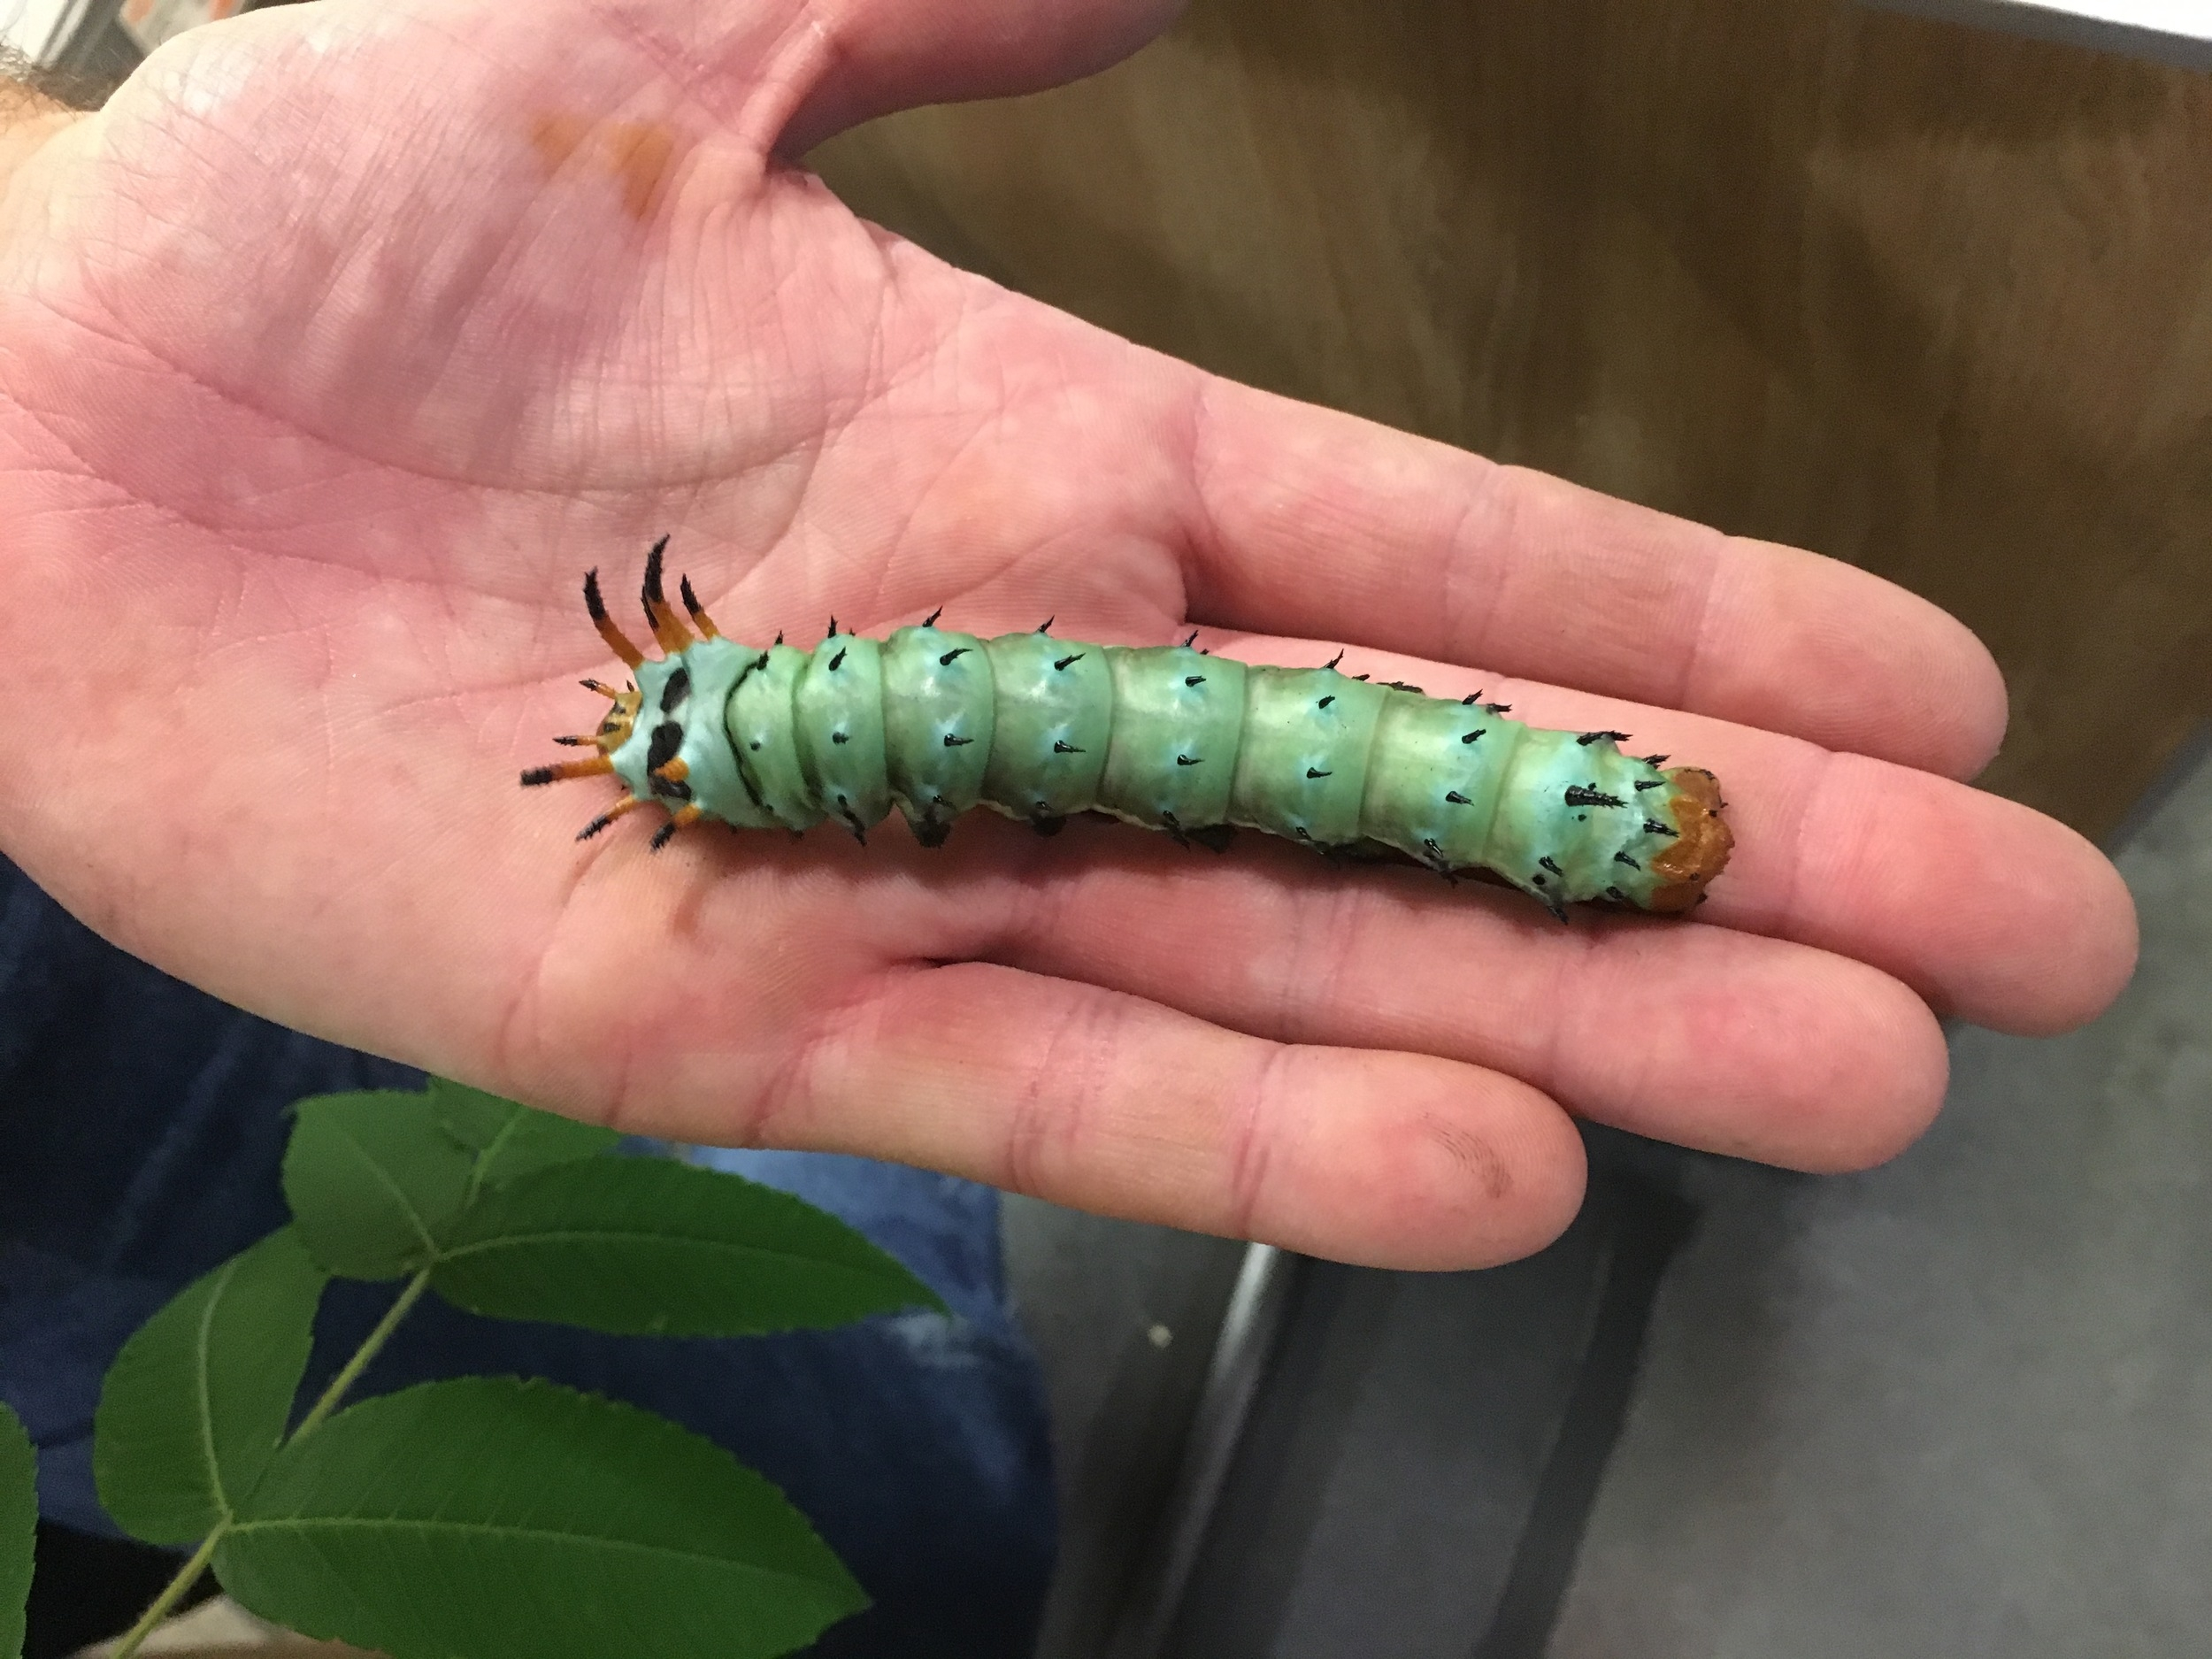 That's one juicy caterpillar.